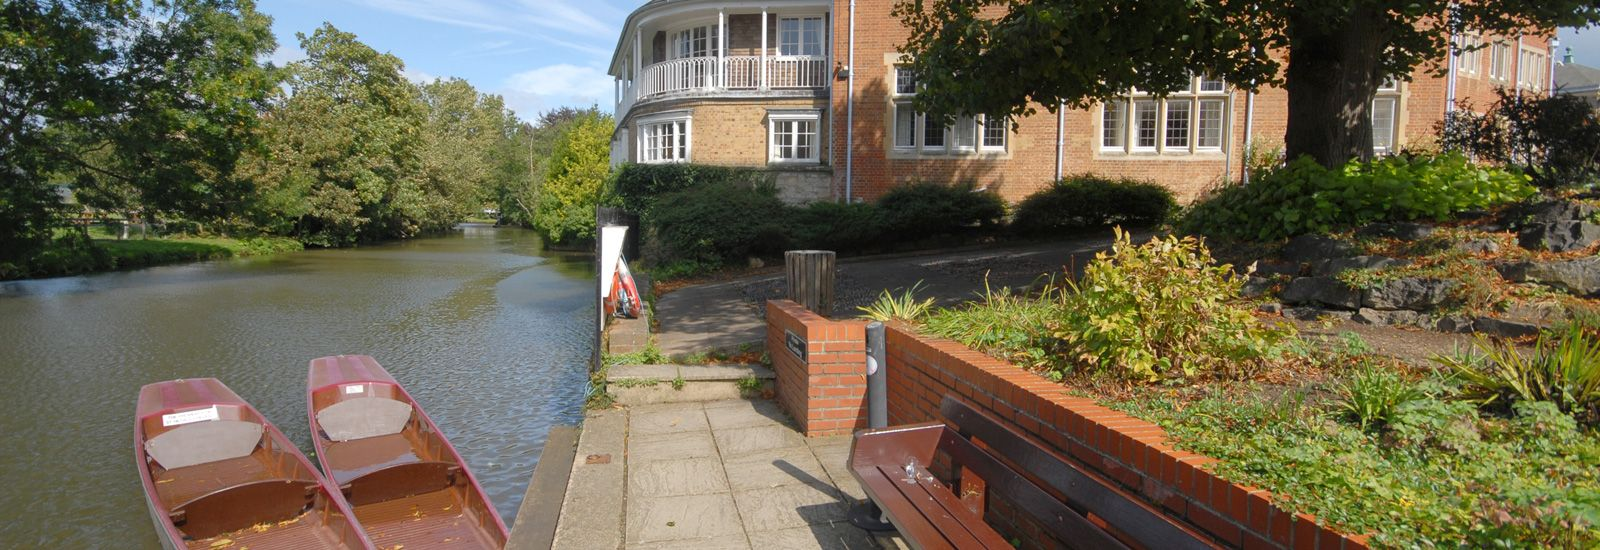 The riverside with two boats at St Hilda's College